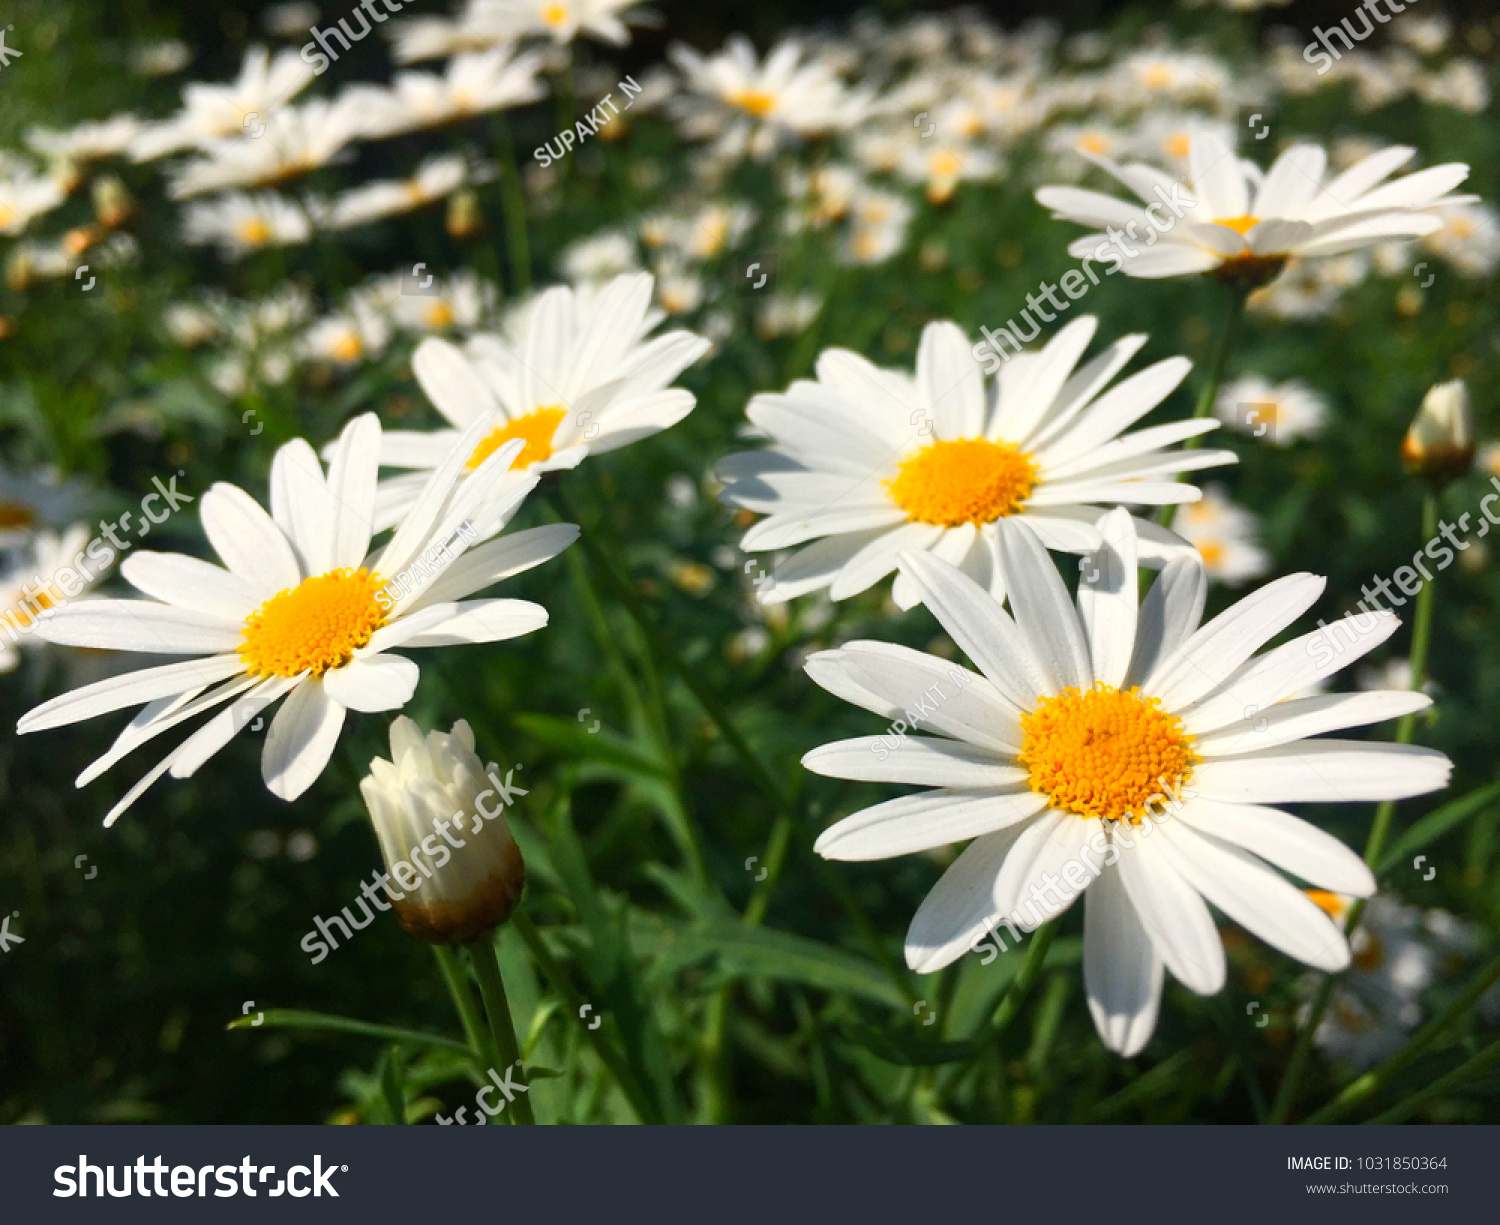 White daisy flower meaning love eternity stock photo royalty free white daisy flower meaning love eternity izmirmasajfo